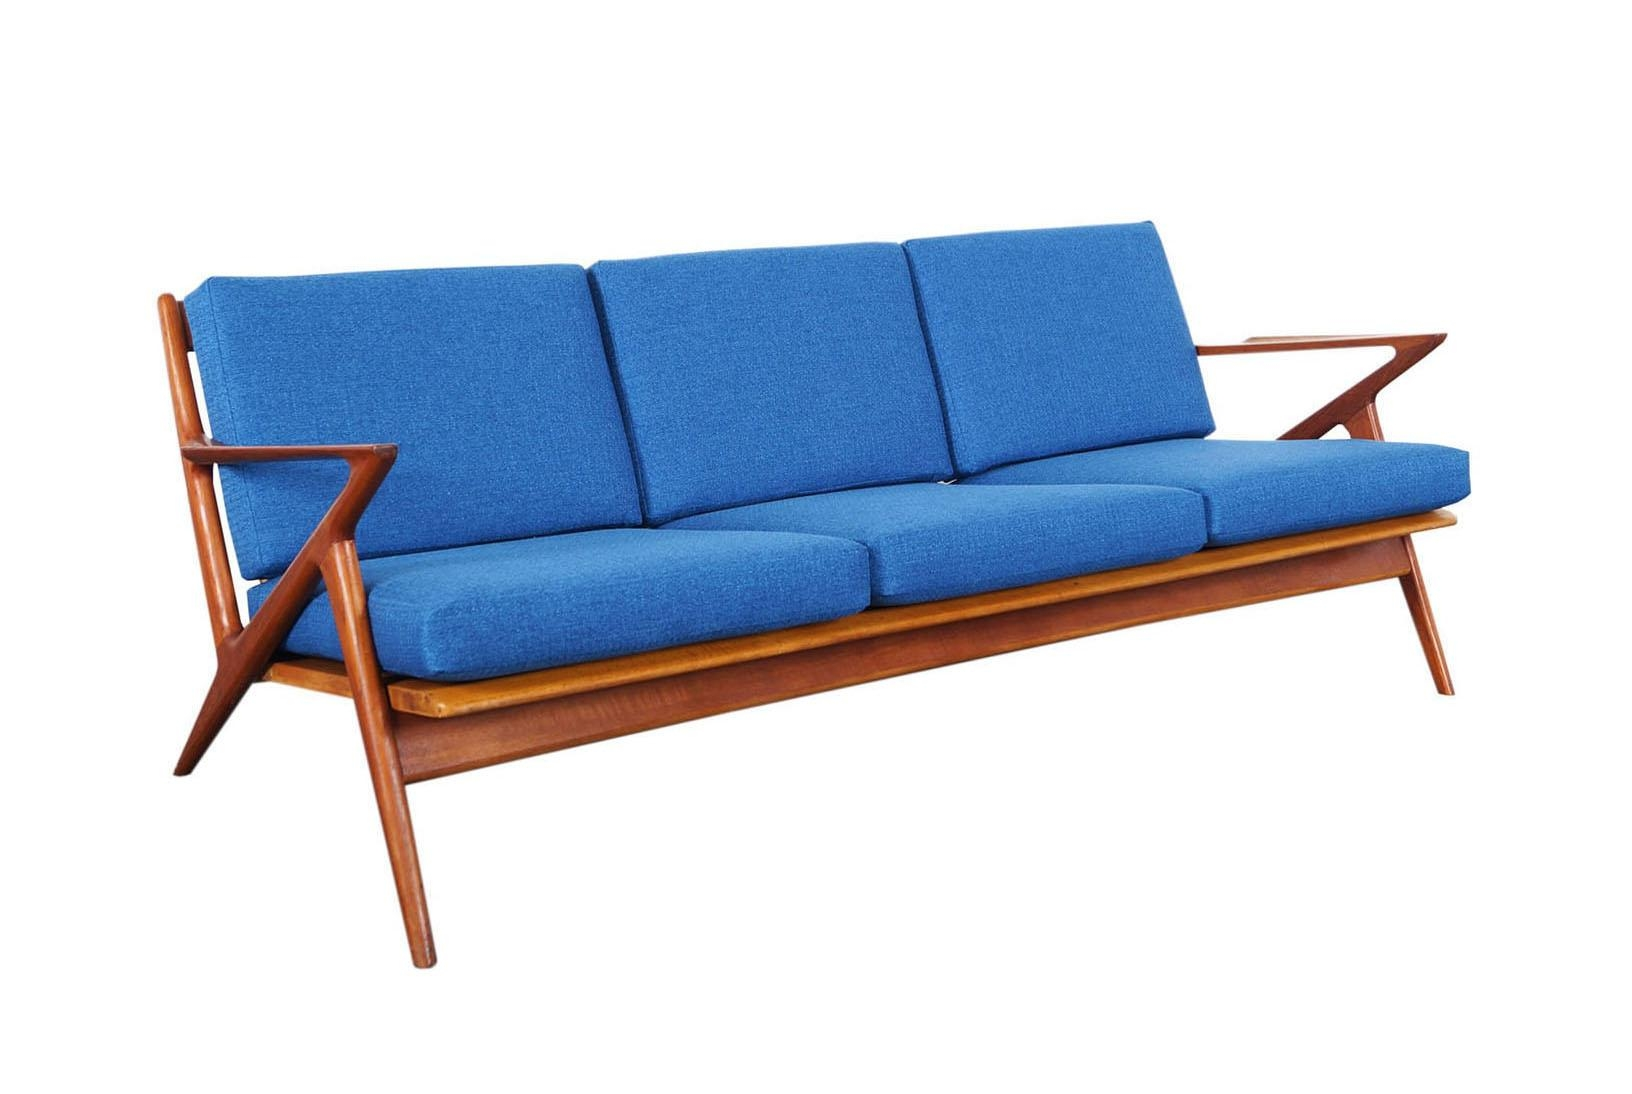 Danish Modern Noho | Danish, Vintage, Mid Century Furniture In Modern Danish Sofas (View 19 of 20)